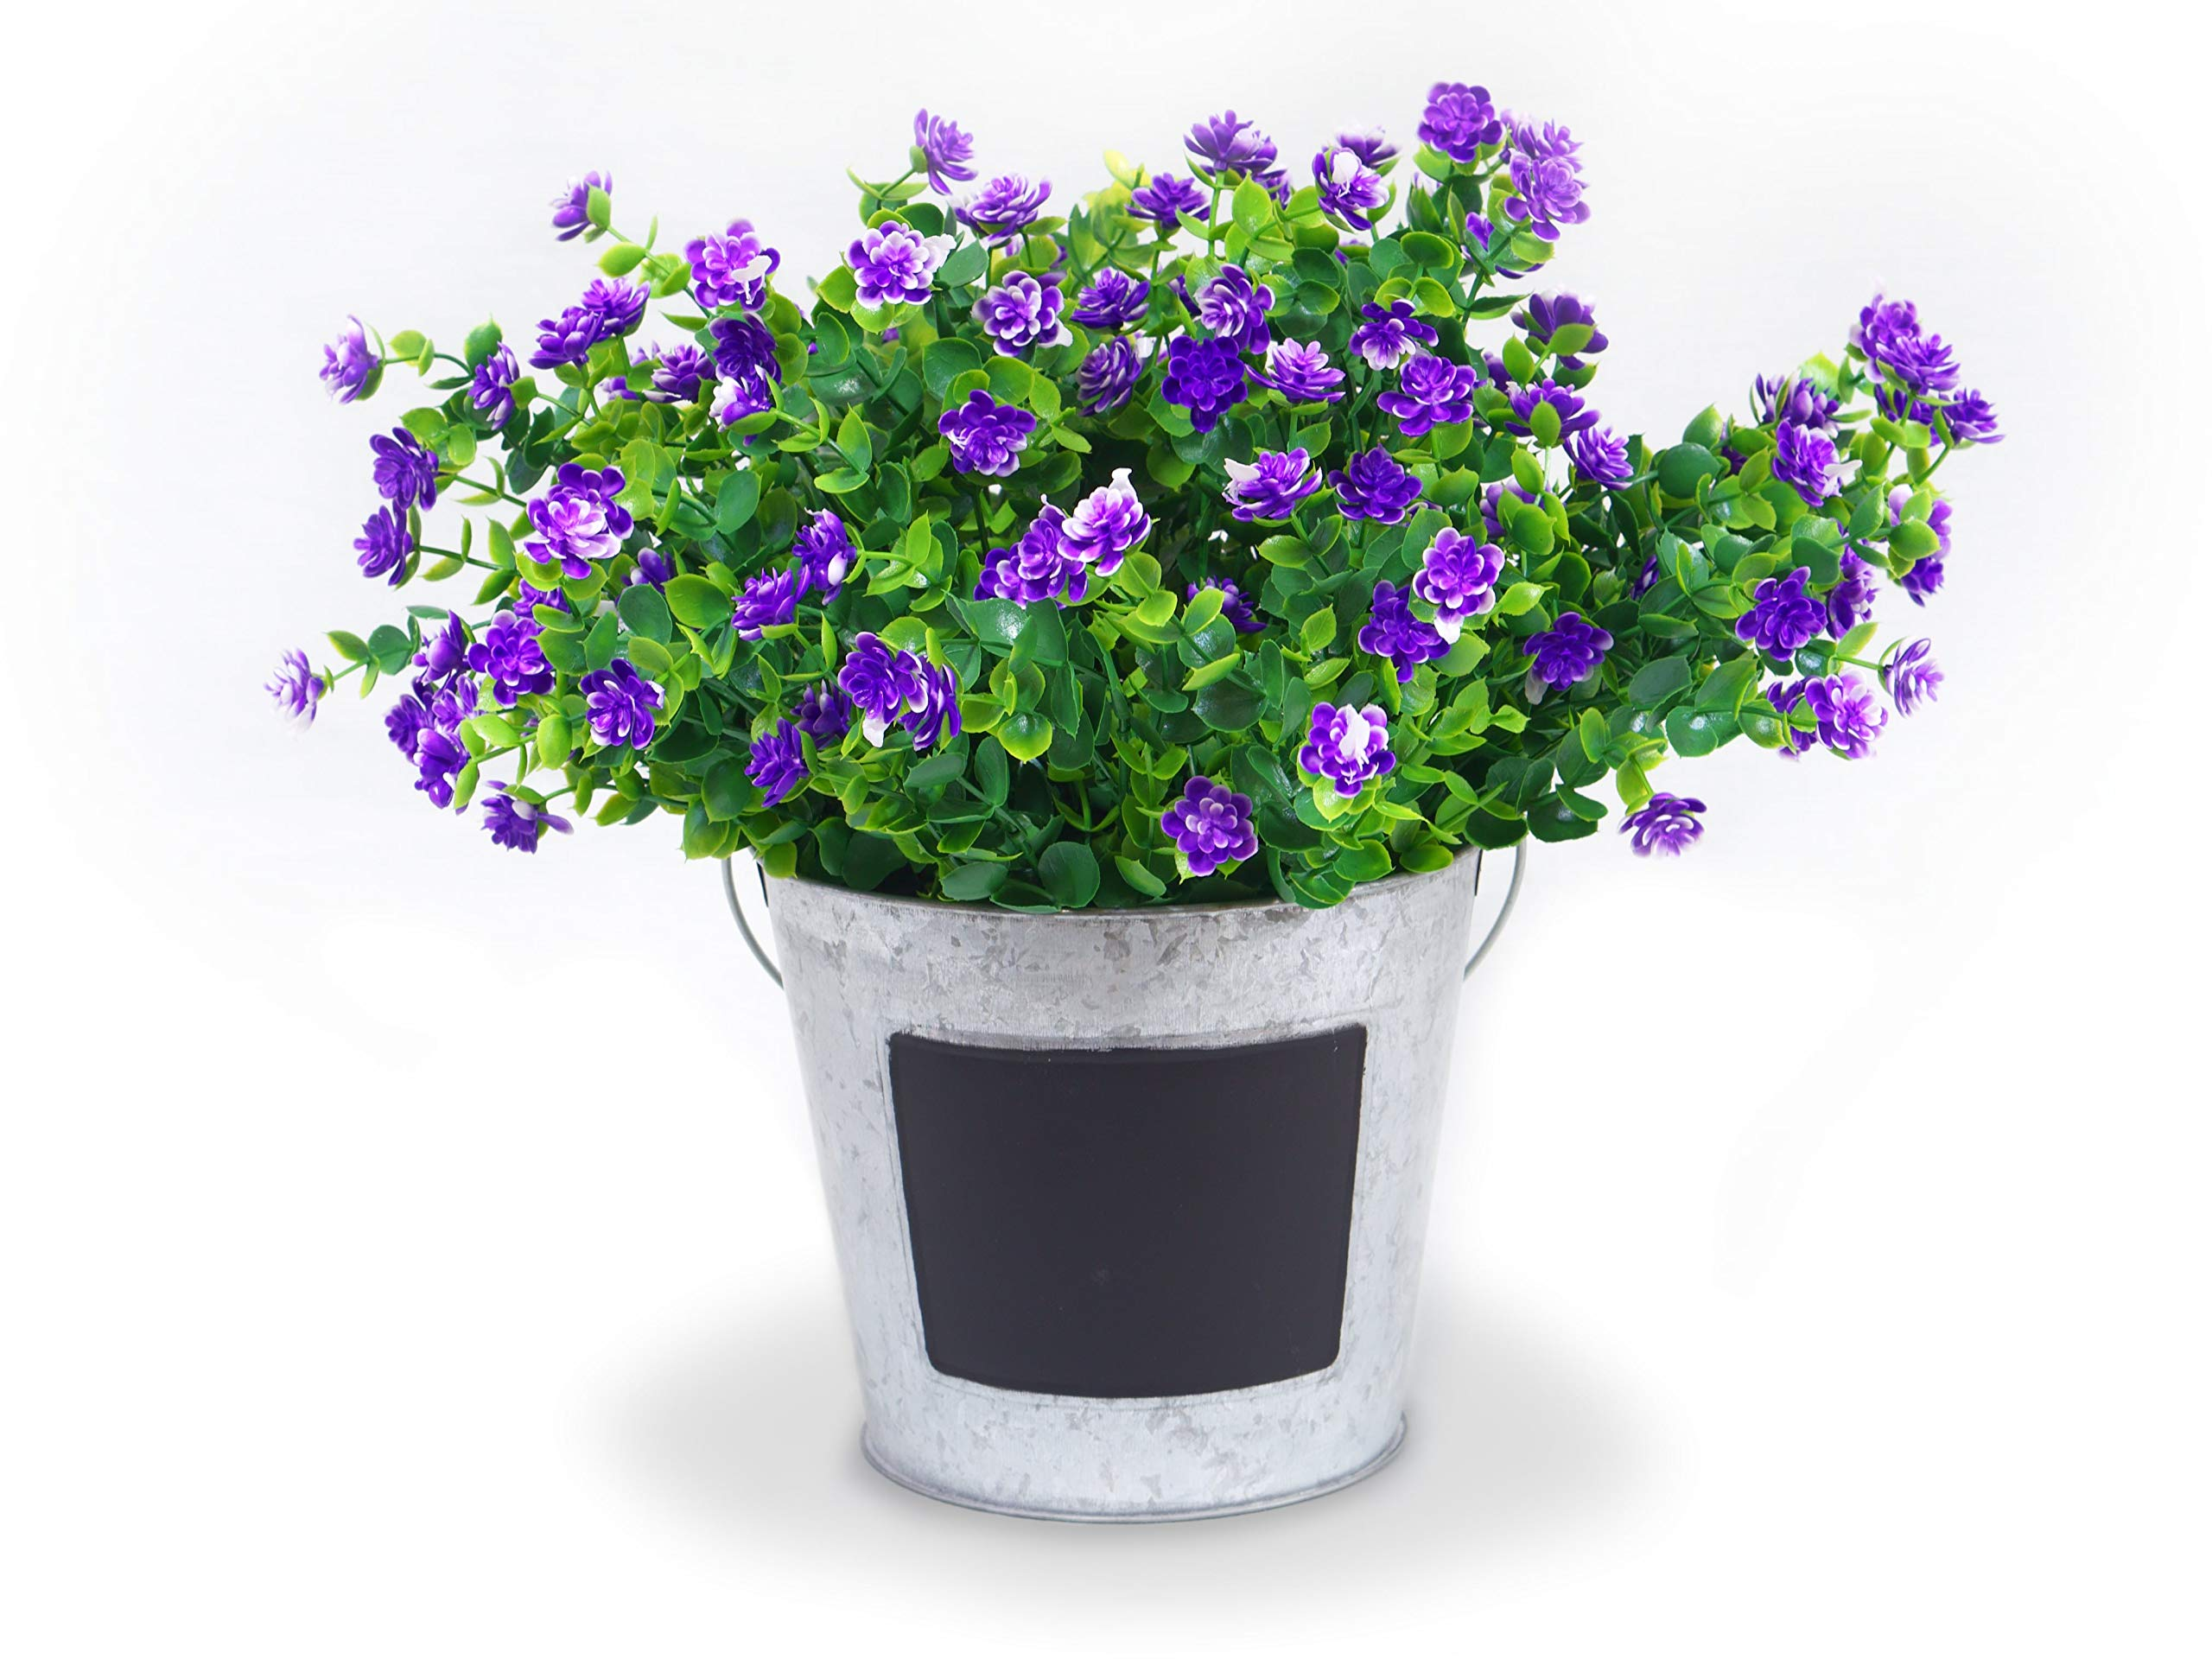 Forever Flowers Artificial Flower Shrubs for Indoor/Outdoor Decor | 6pk of UV Resistant Faux Plants for Your Home and Garden (Purple) by Forever Flowers